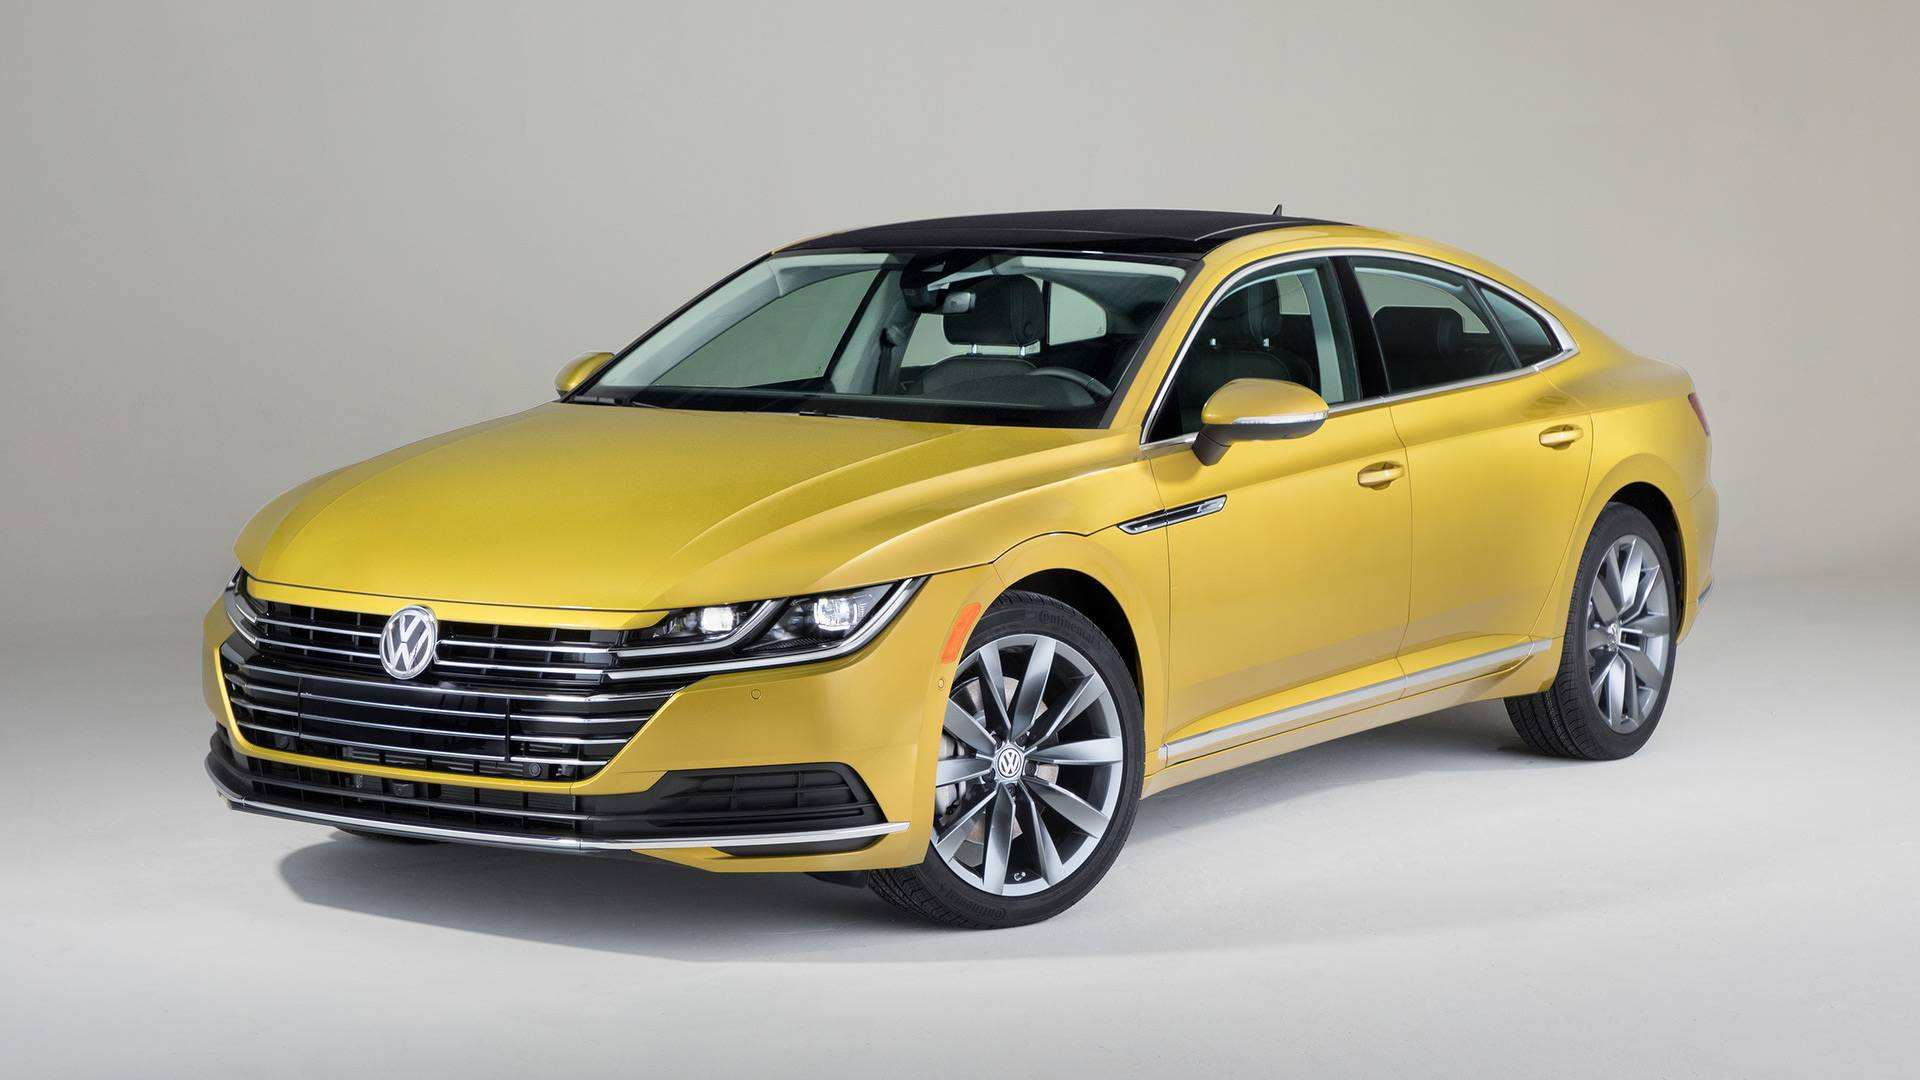 81 The Best Volkswagen Arteon 2019 Release Date Research New